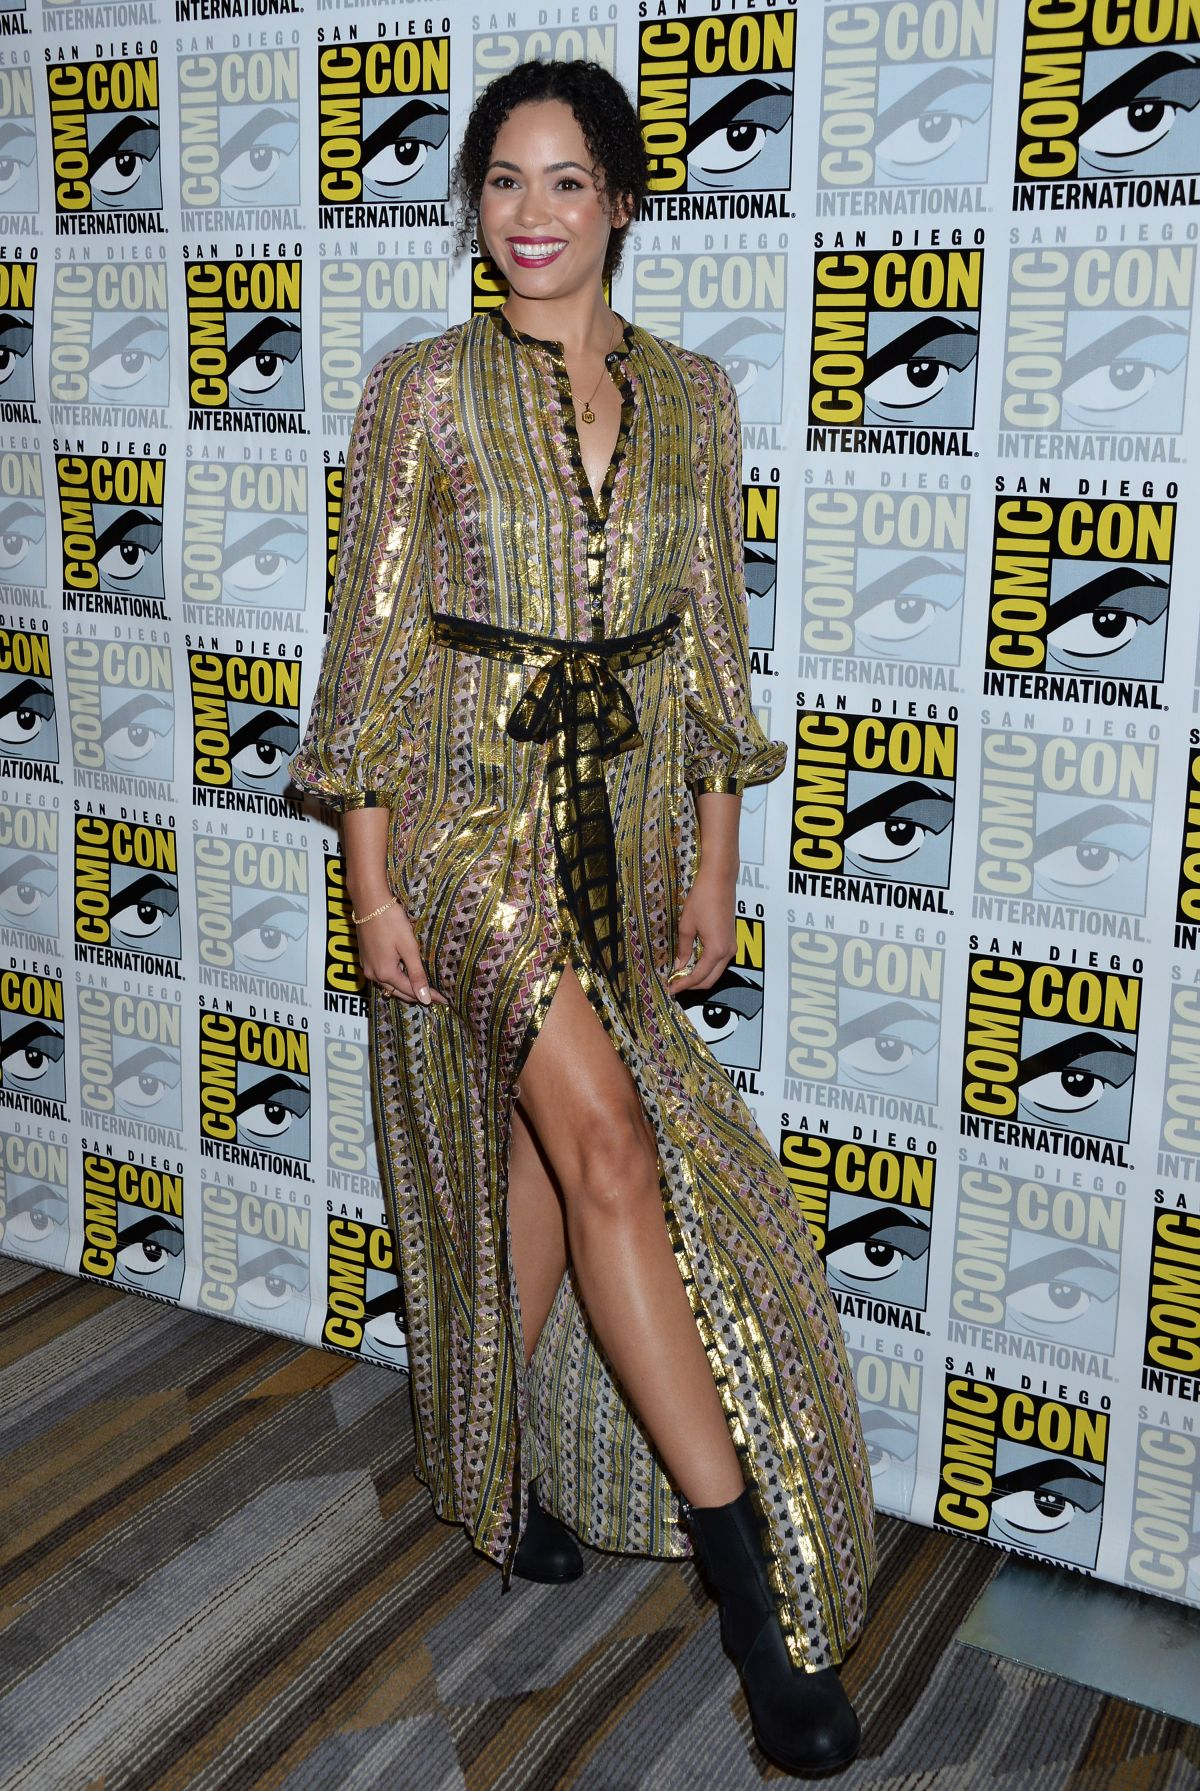 MADELEINE MANTOCK at Charmed Photocall at Comic-con in San